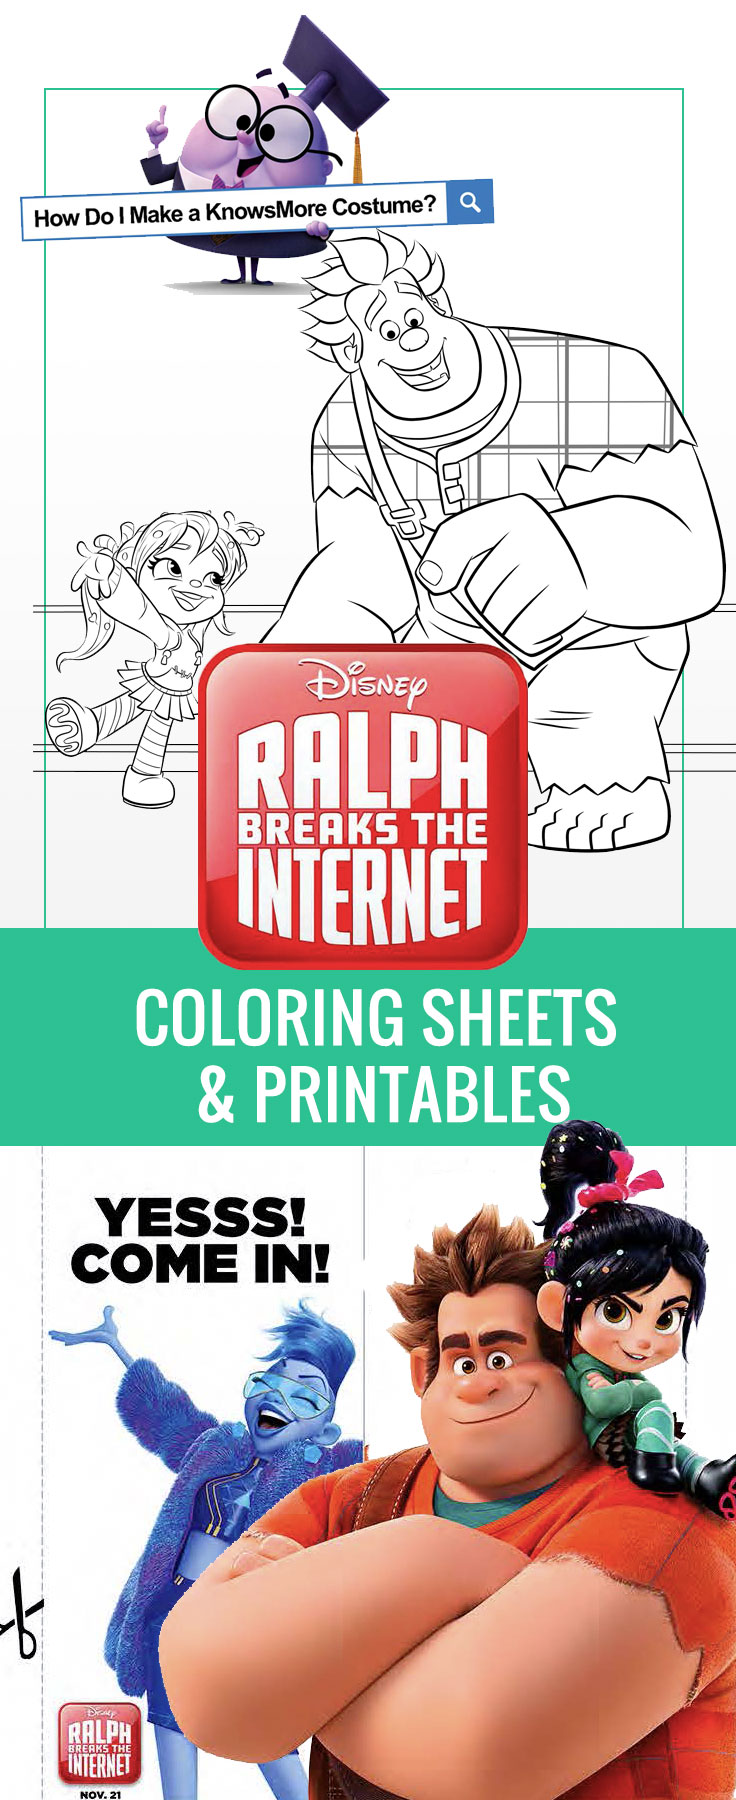 Ralph Breaks The Internet coloring sheets & printables